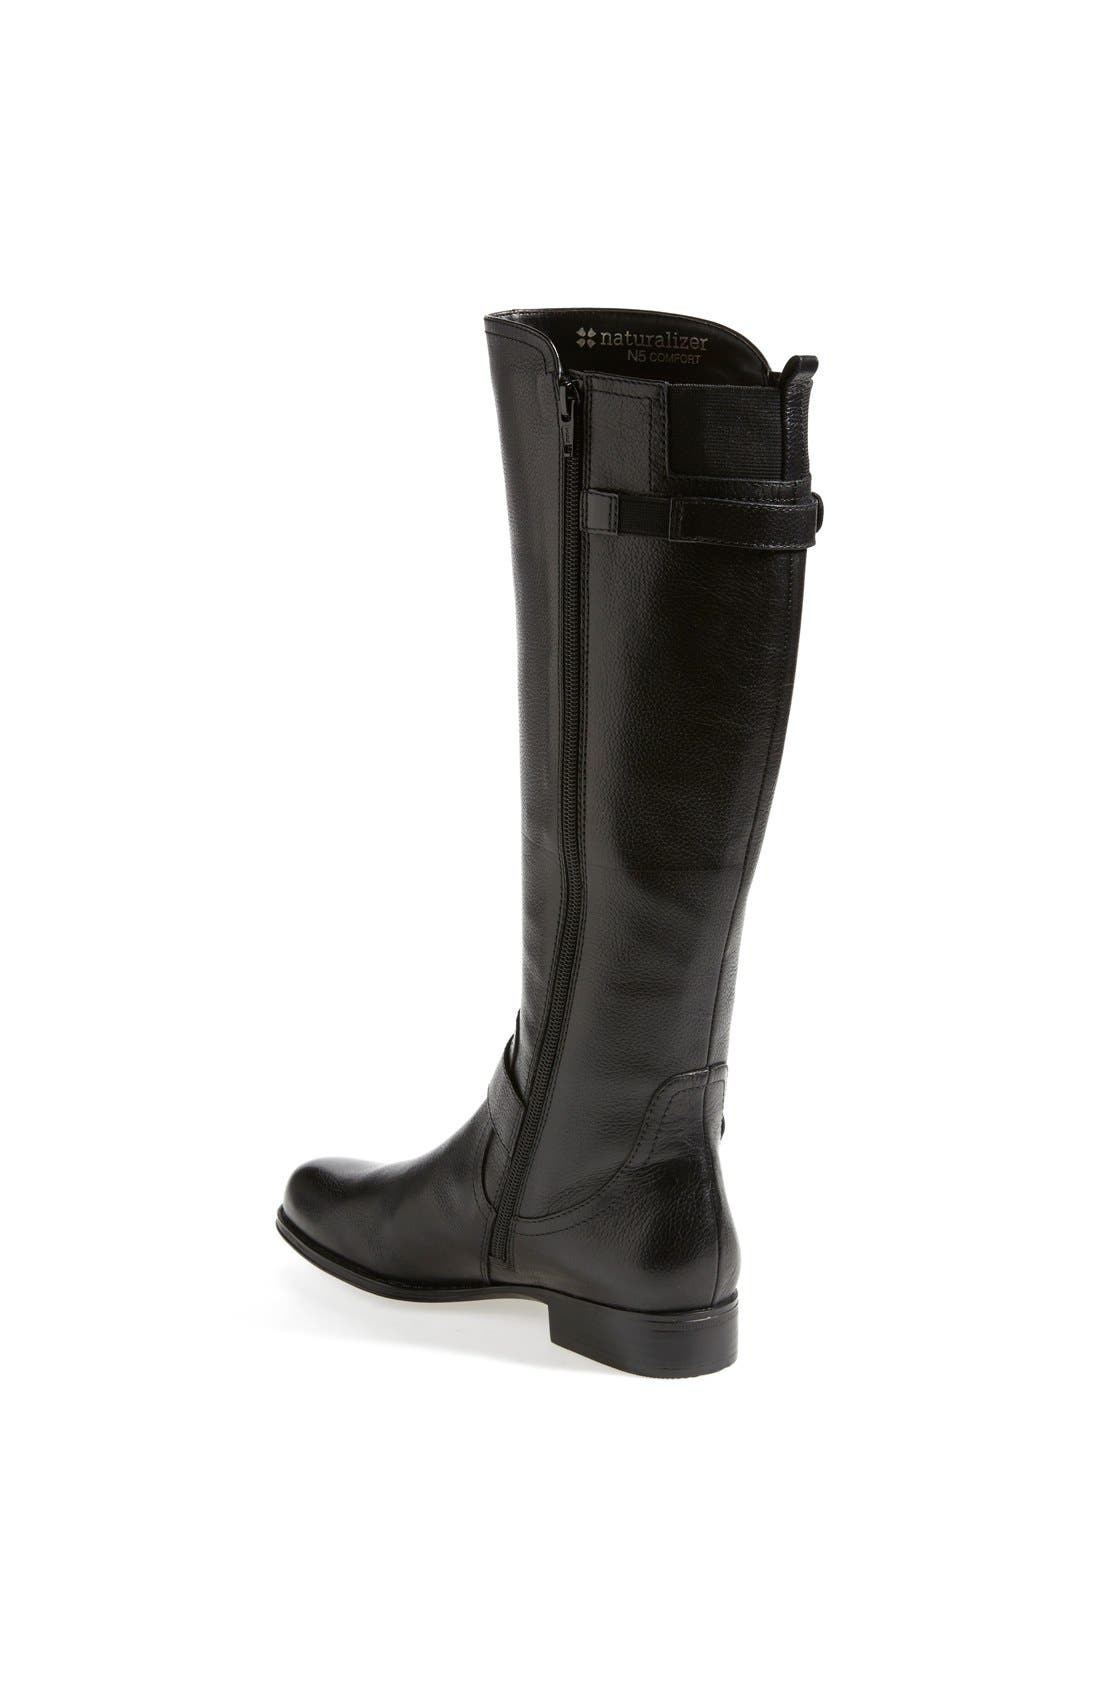 Alternate Image 2  - Naturalizer 'Jersey' Leather Riding Boot (Wide Calf) (Women)